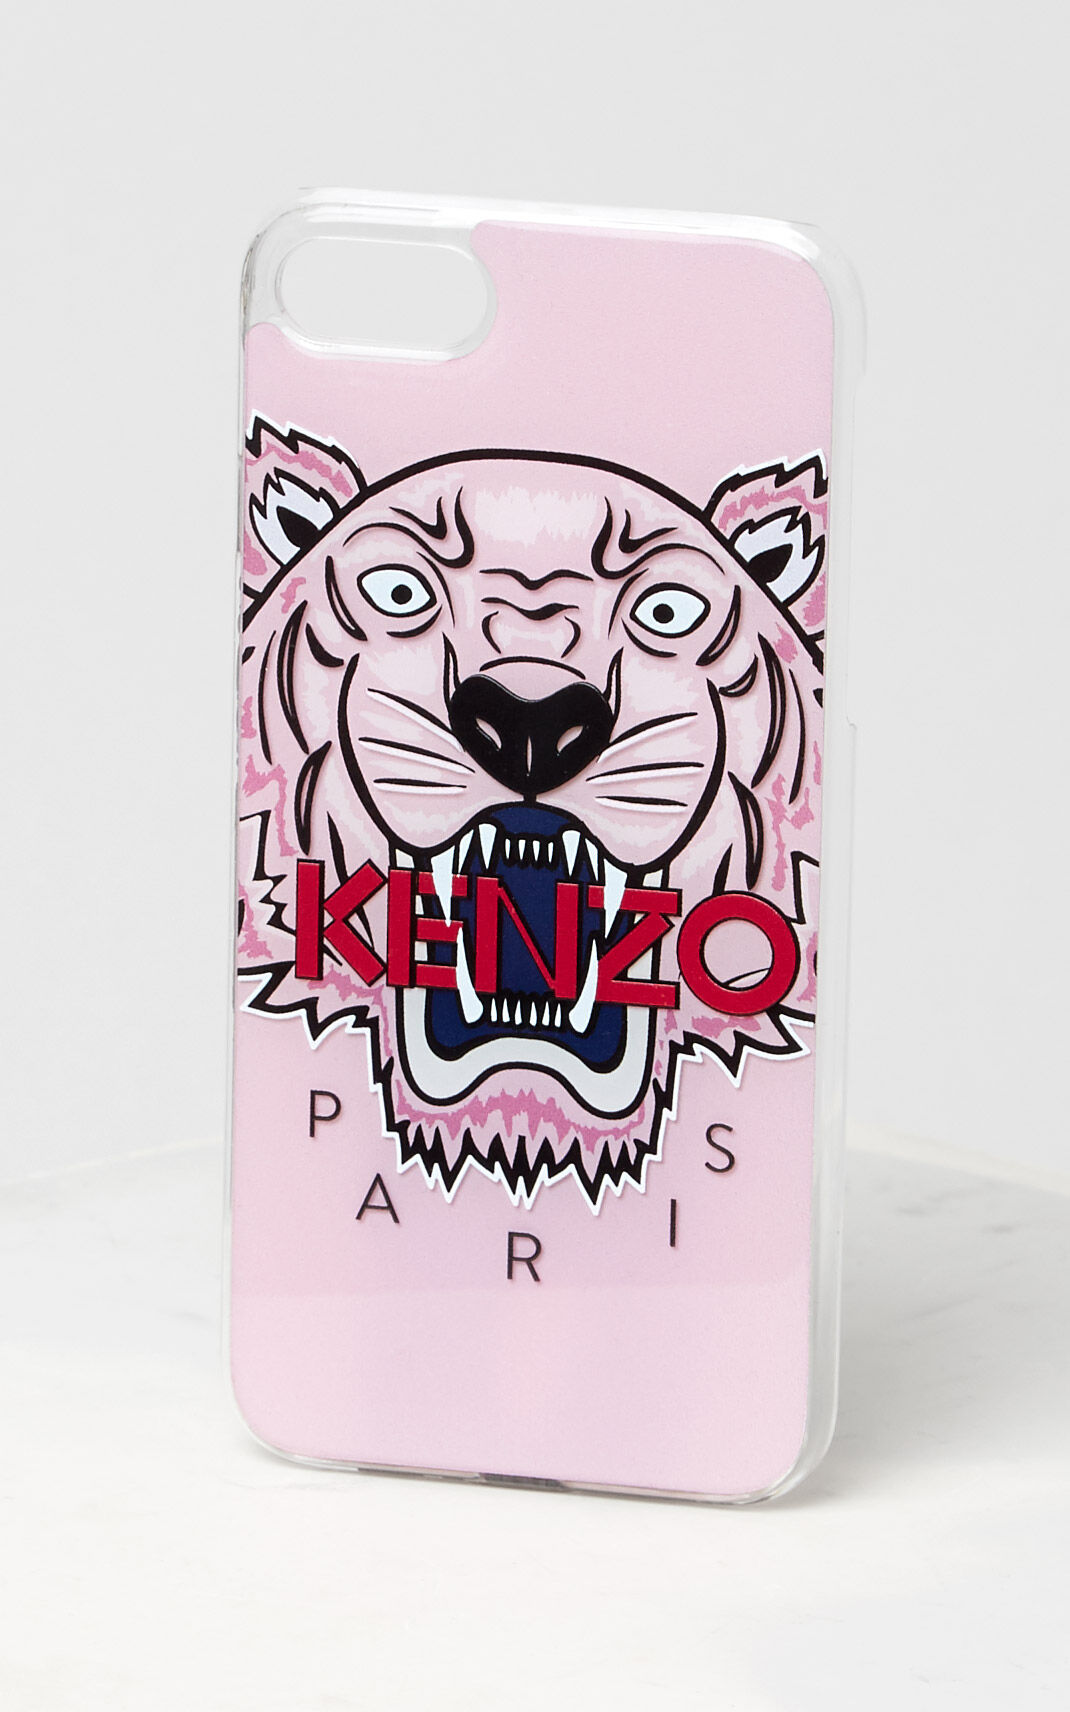 FADED PINK 3D Tiger iPhone 7/8 case for women KENZO